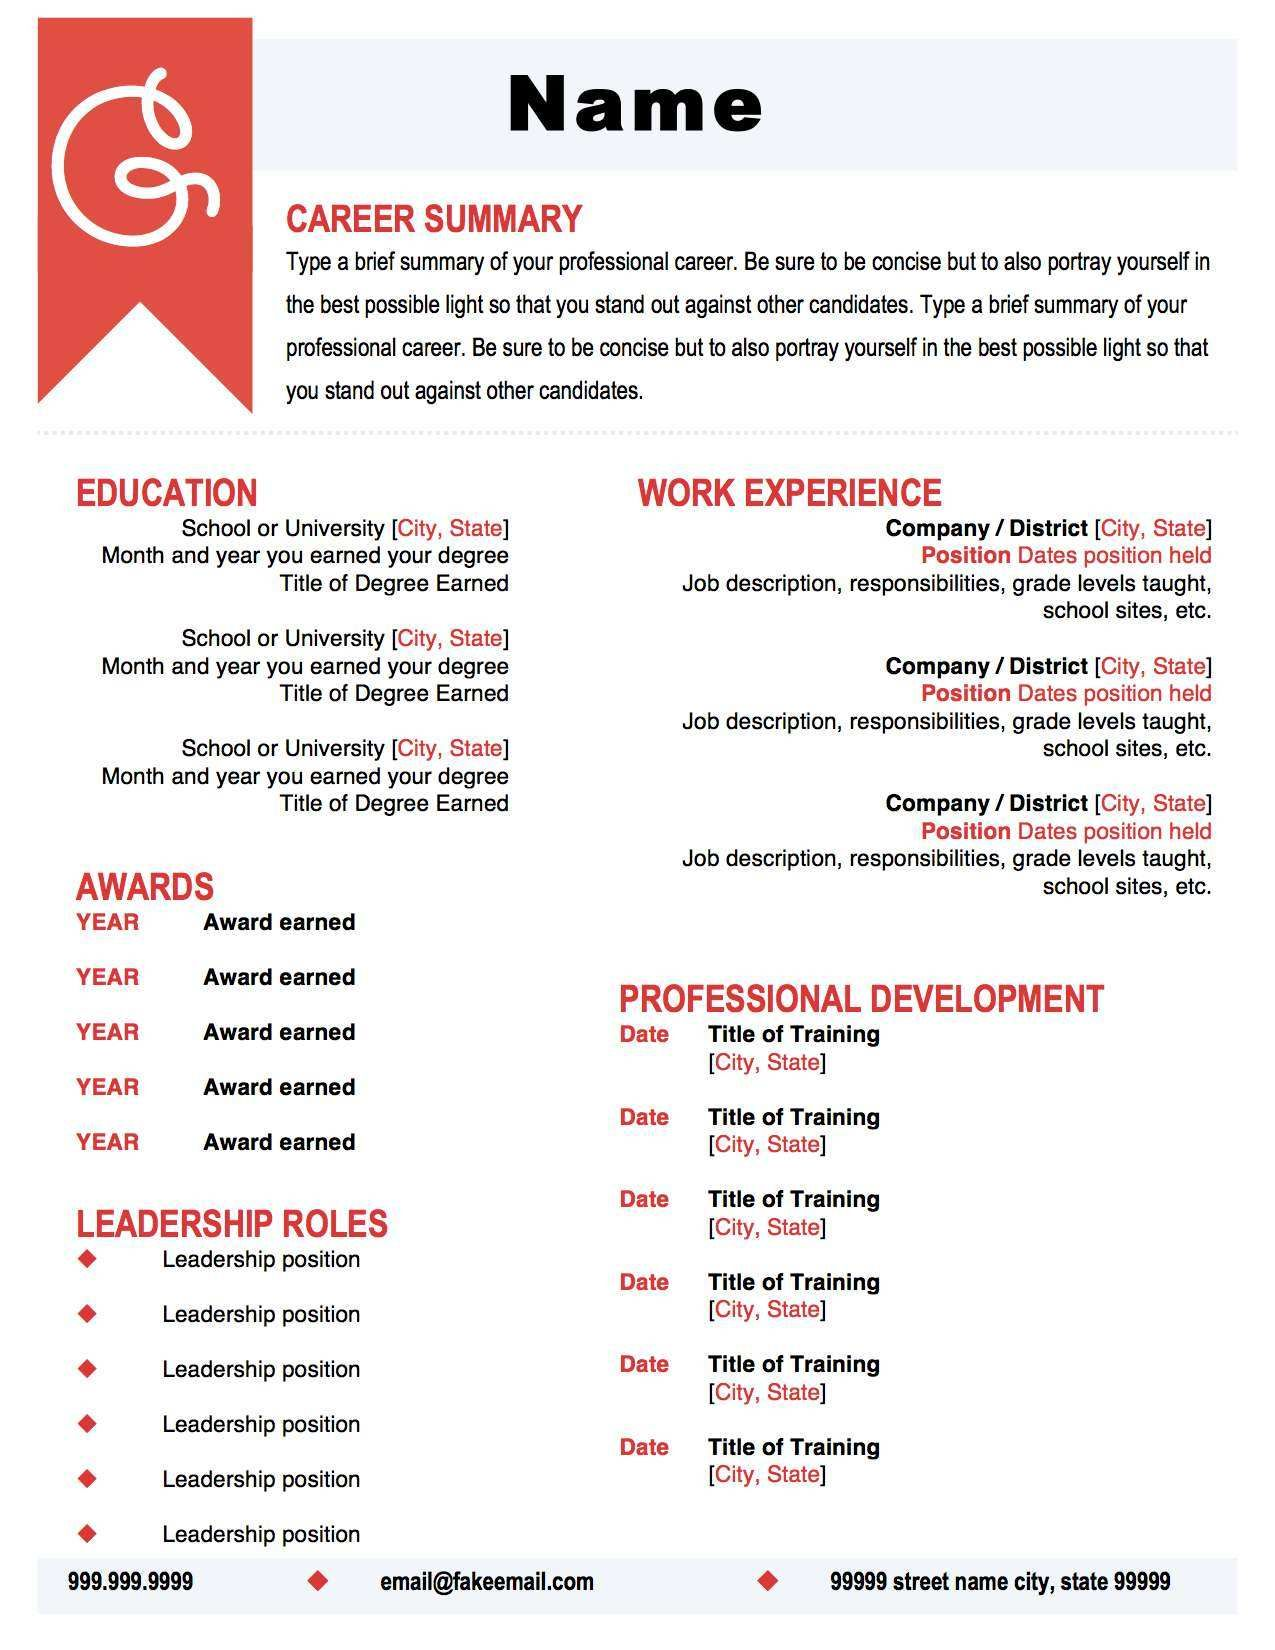 coral and black resume template  make your resume pop with this beautiful template  the fonts